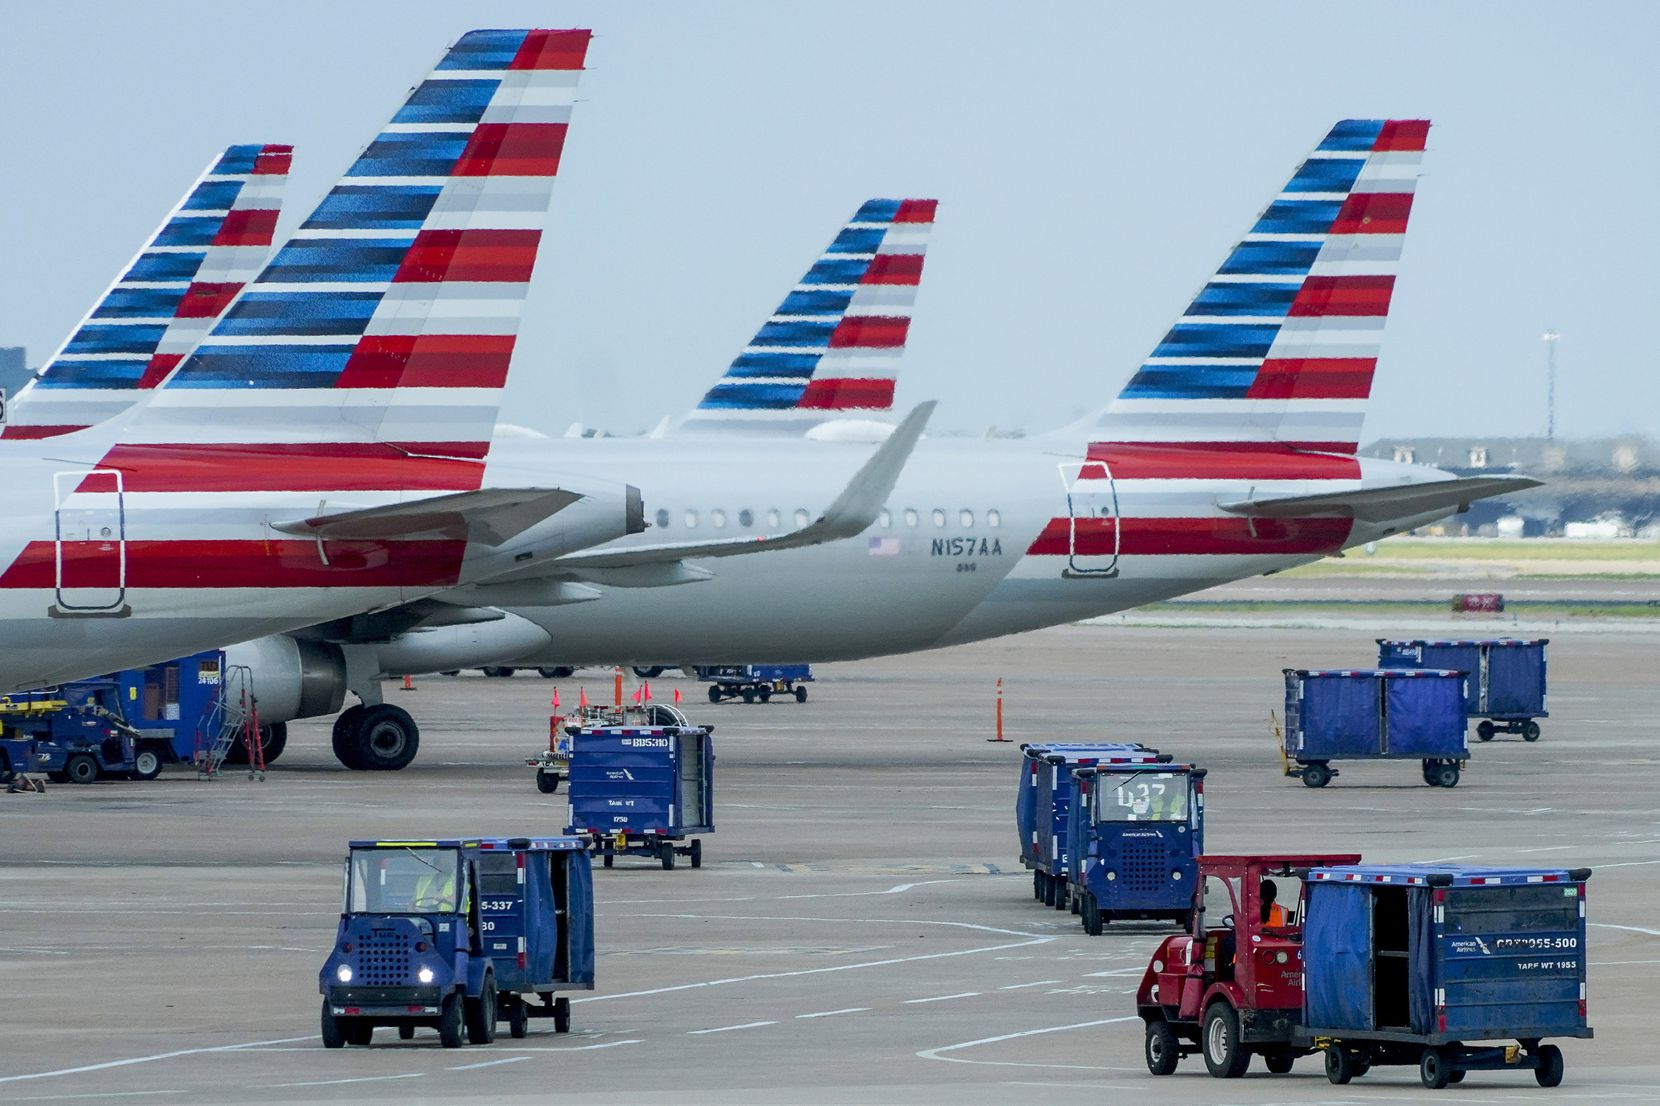 Baggage carts drive on the tarmac near American Airlines planes at the gates of Terminal C at DFW International Airport.